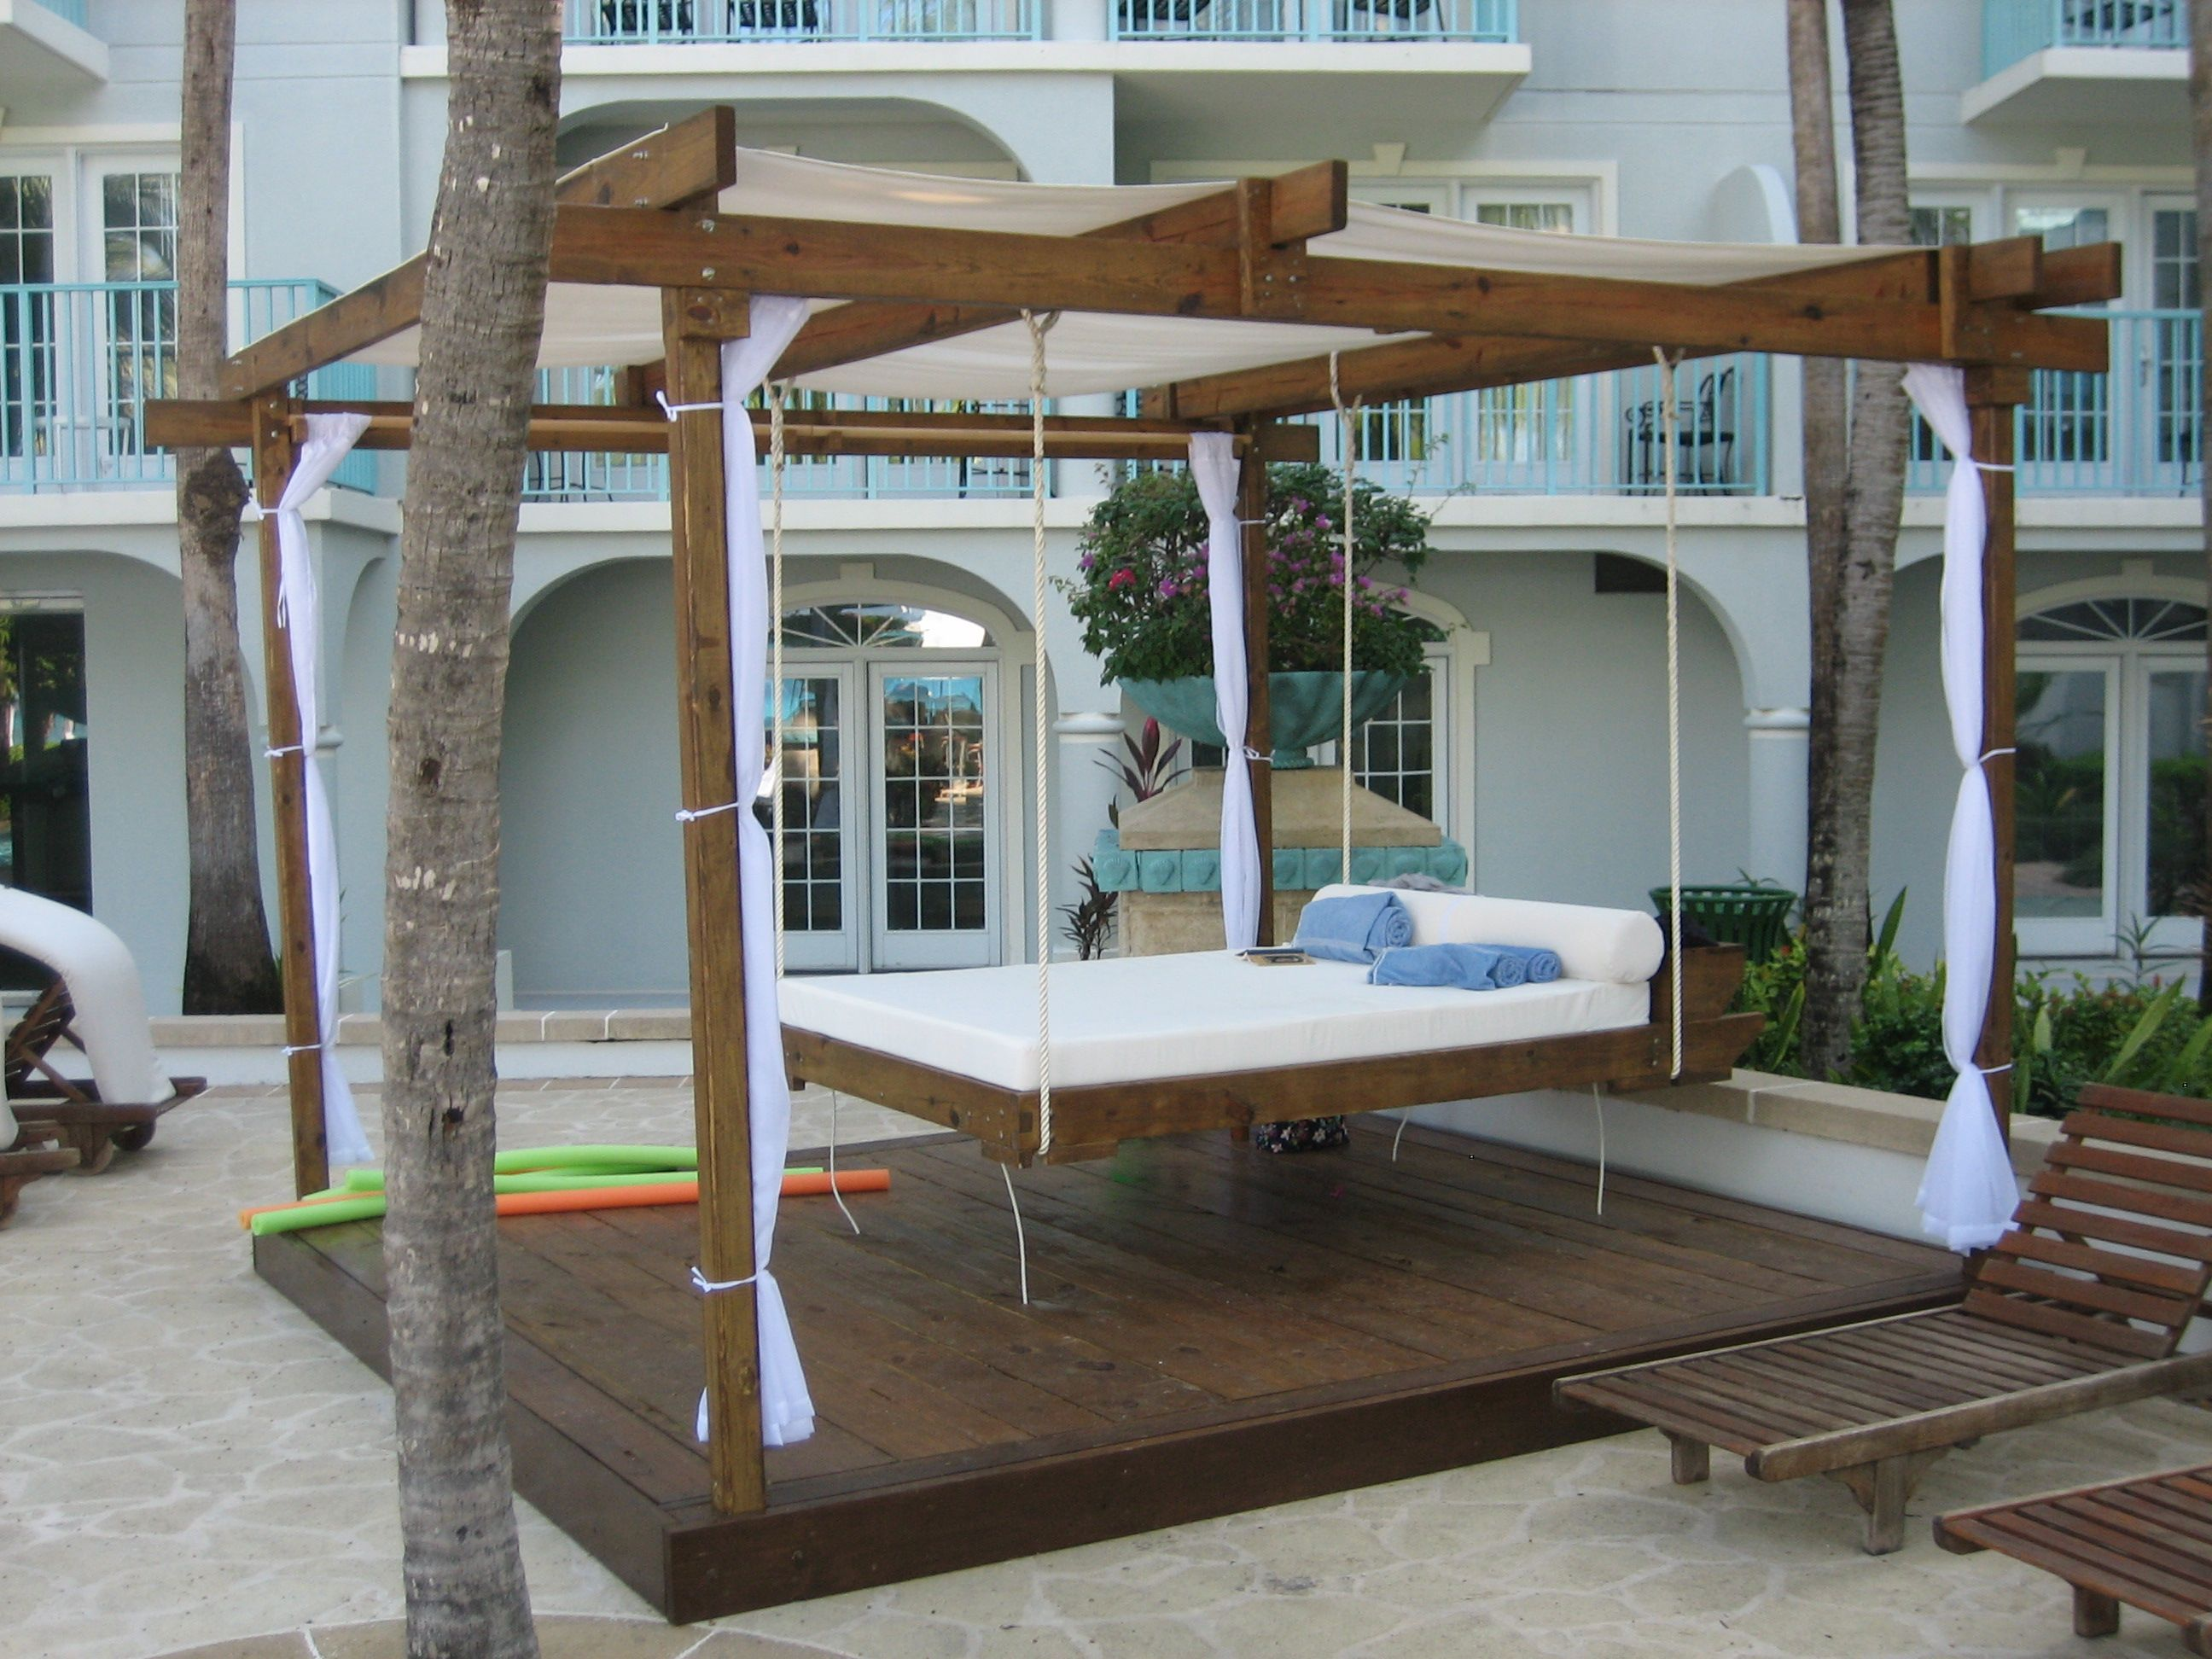 Hanging beds for bedrooms - Inspiration Bedroom Very Popular Teak Outdoor Hanging Beds